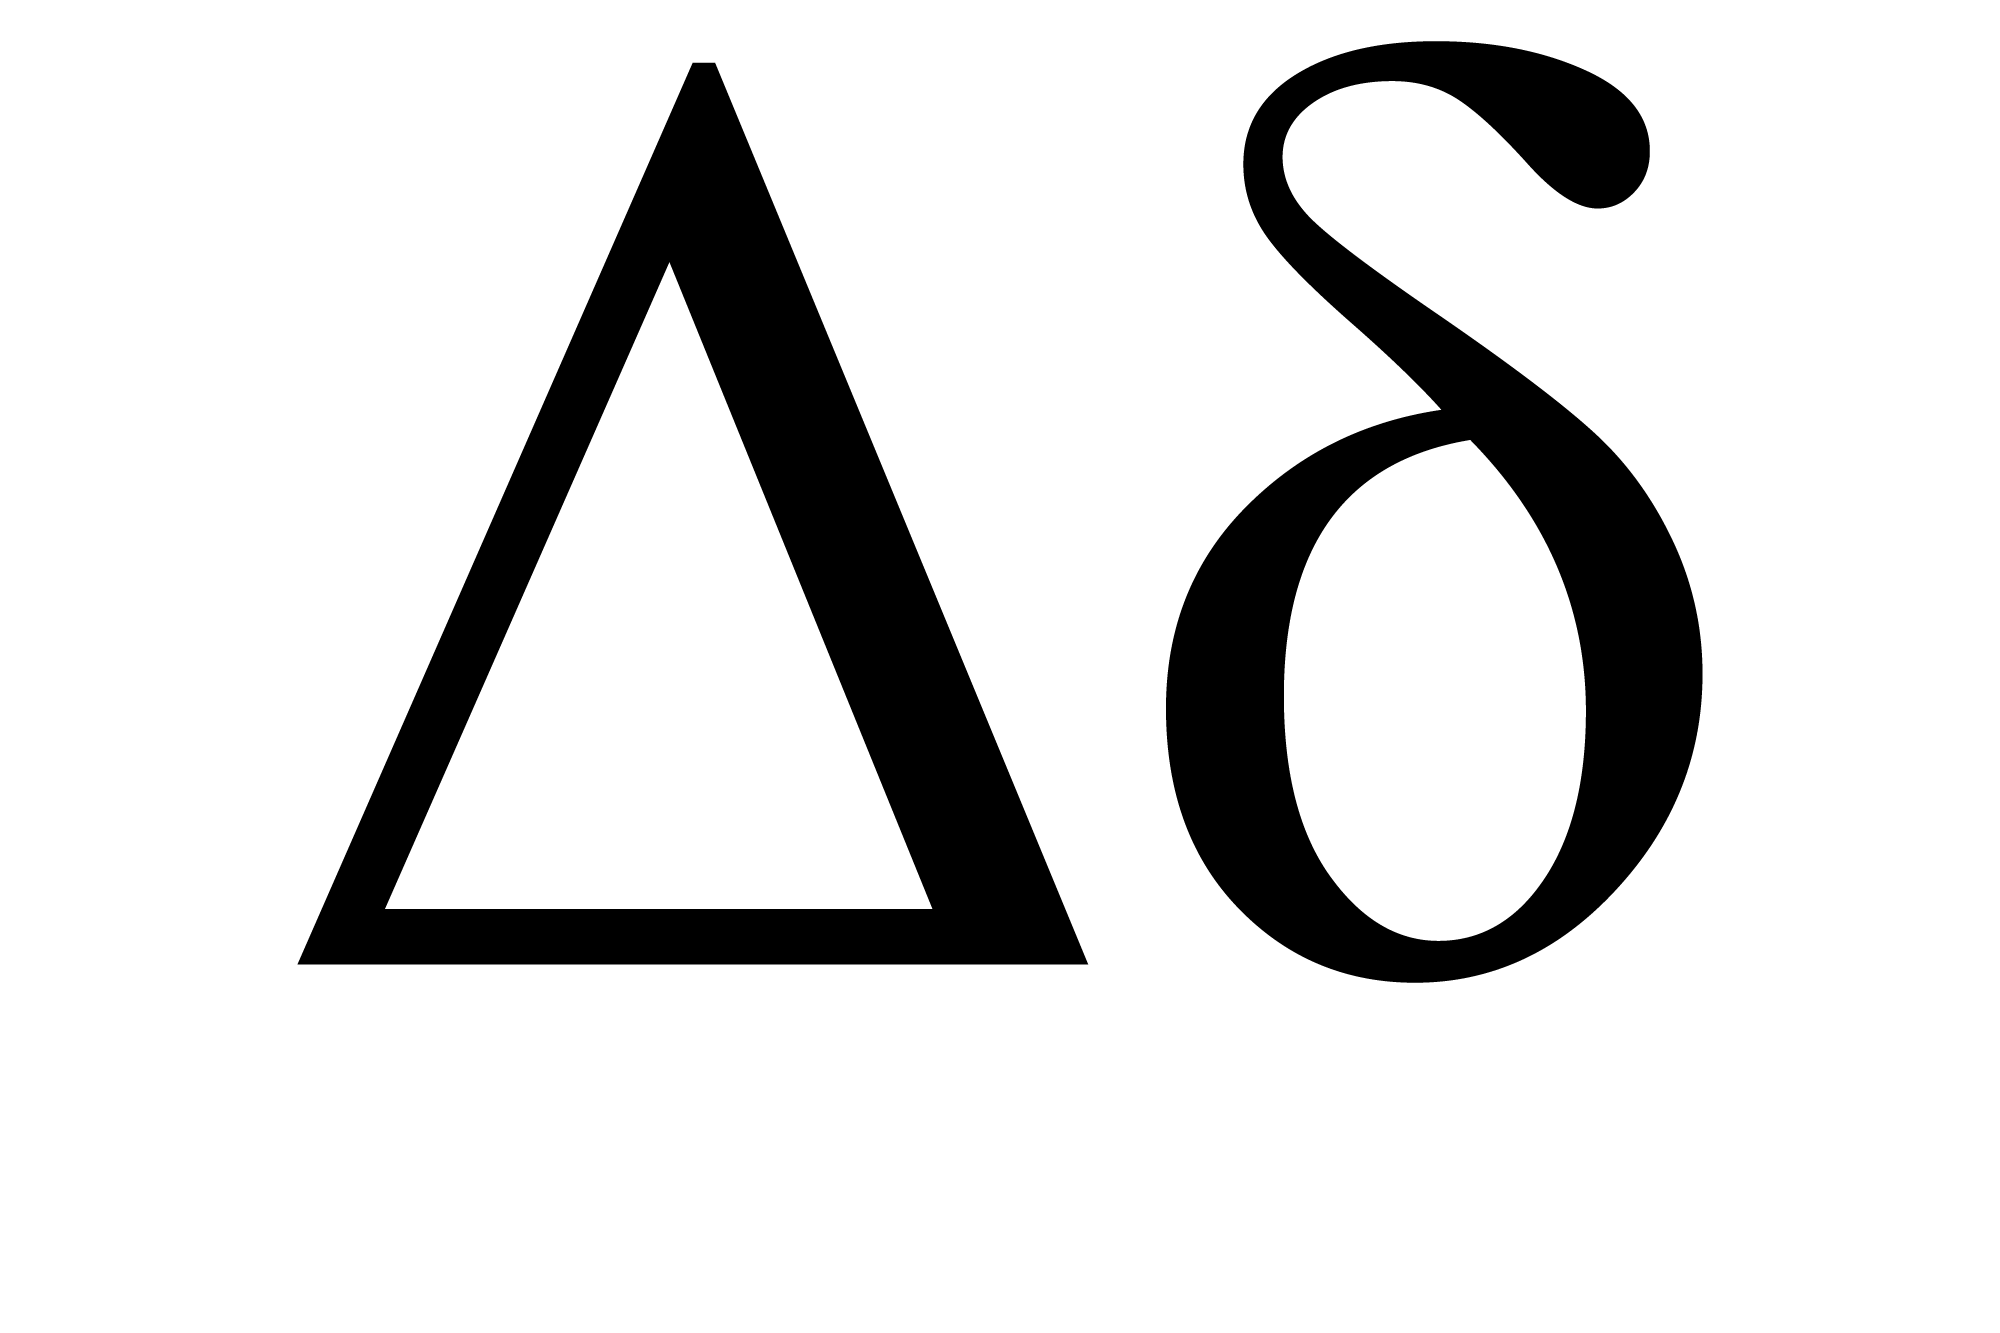 Delta Symbol And Its Meaning - Delta Letter/Sign In Greek Alphabet